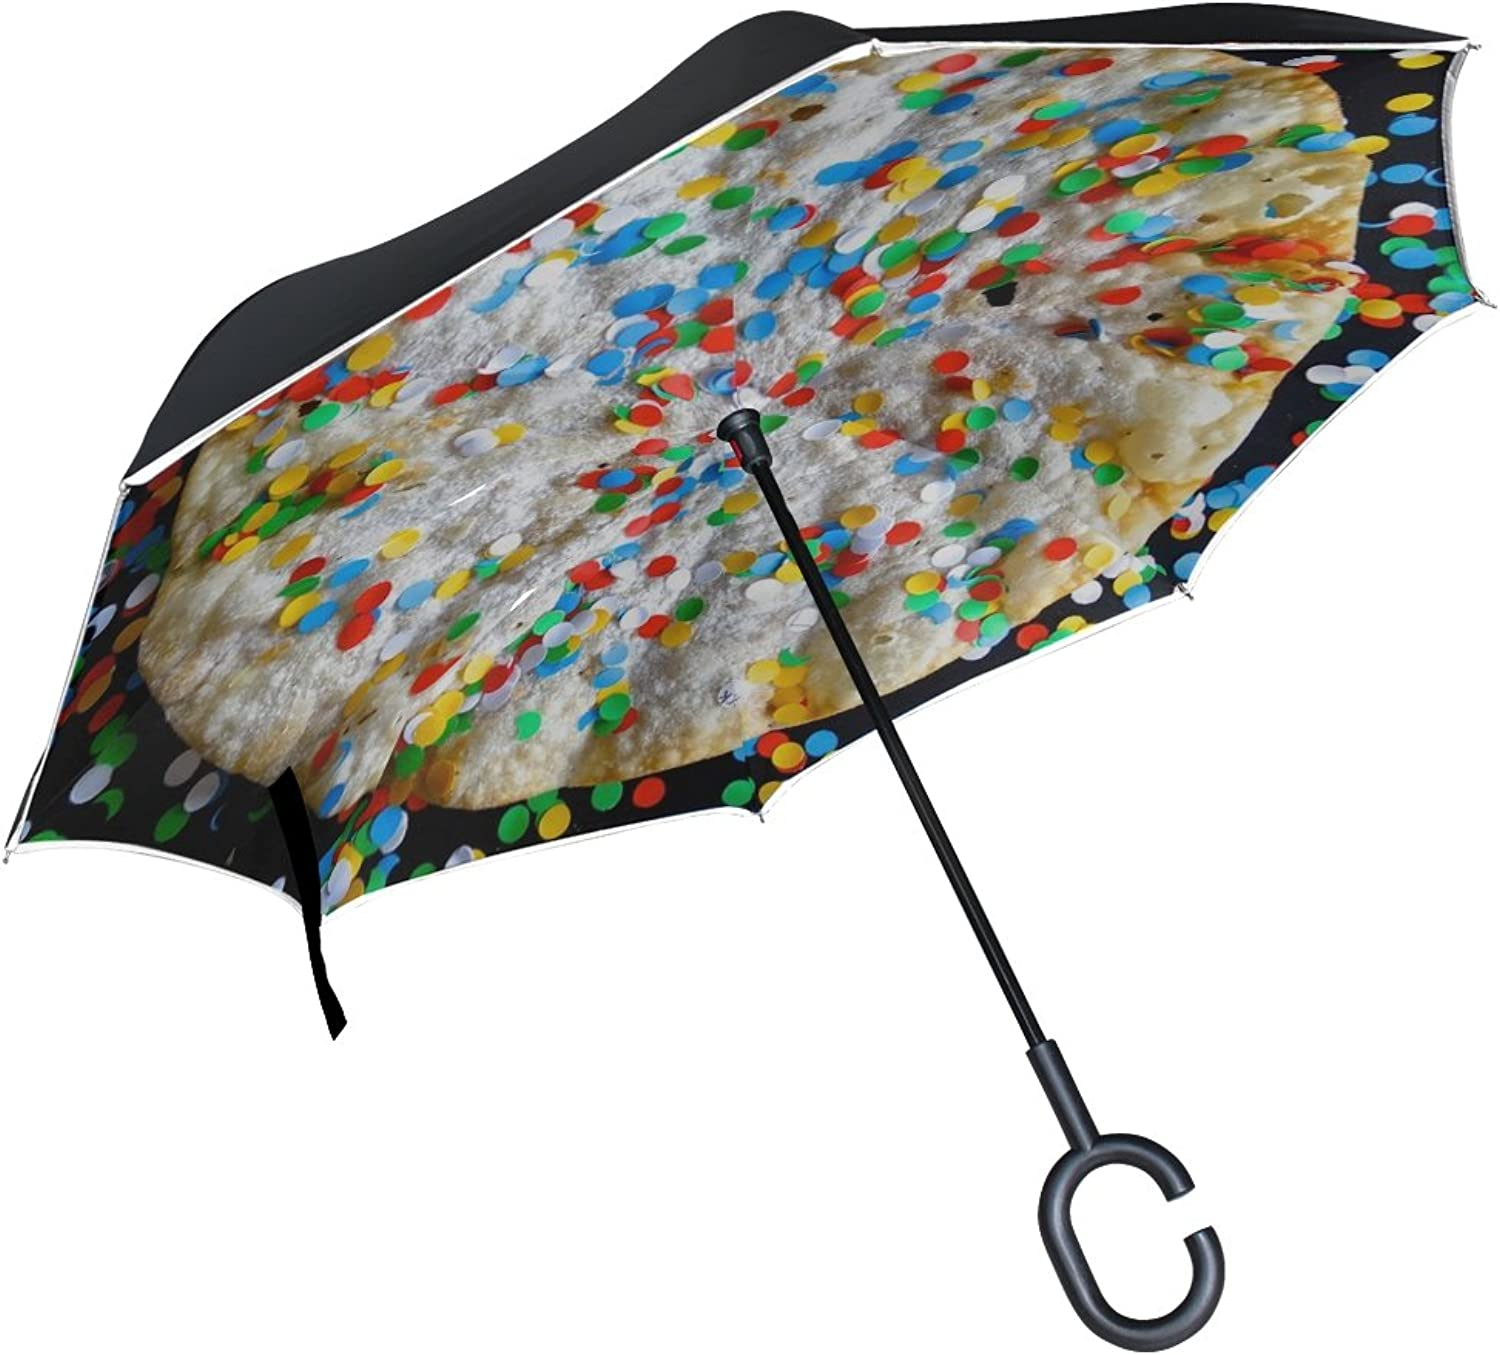 Double Layer Ingreened Carnival February January Carnival Cake Umbrellas Reverse Folding Umbrella Windproof Uv Predection Big Straight Umbrella for Car Rain Outdoor with CShaped Handle